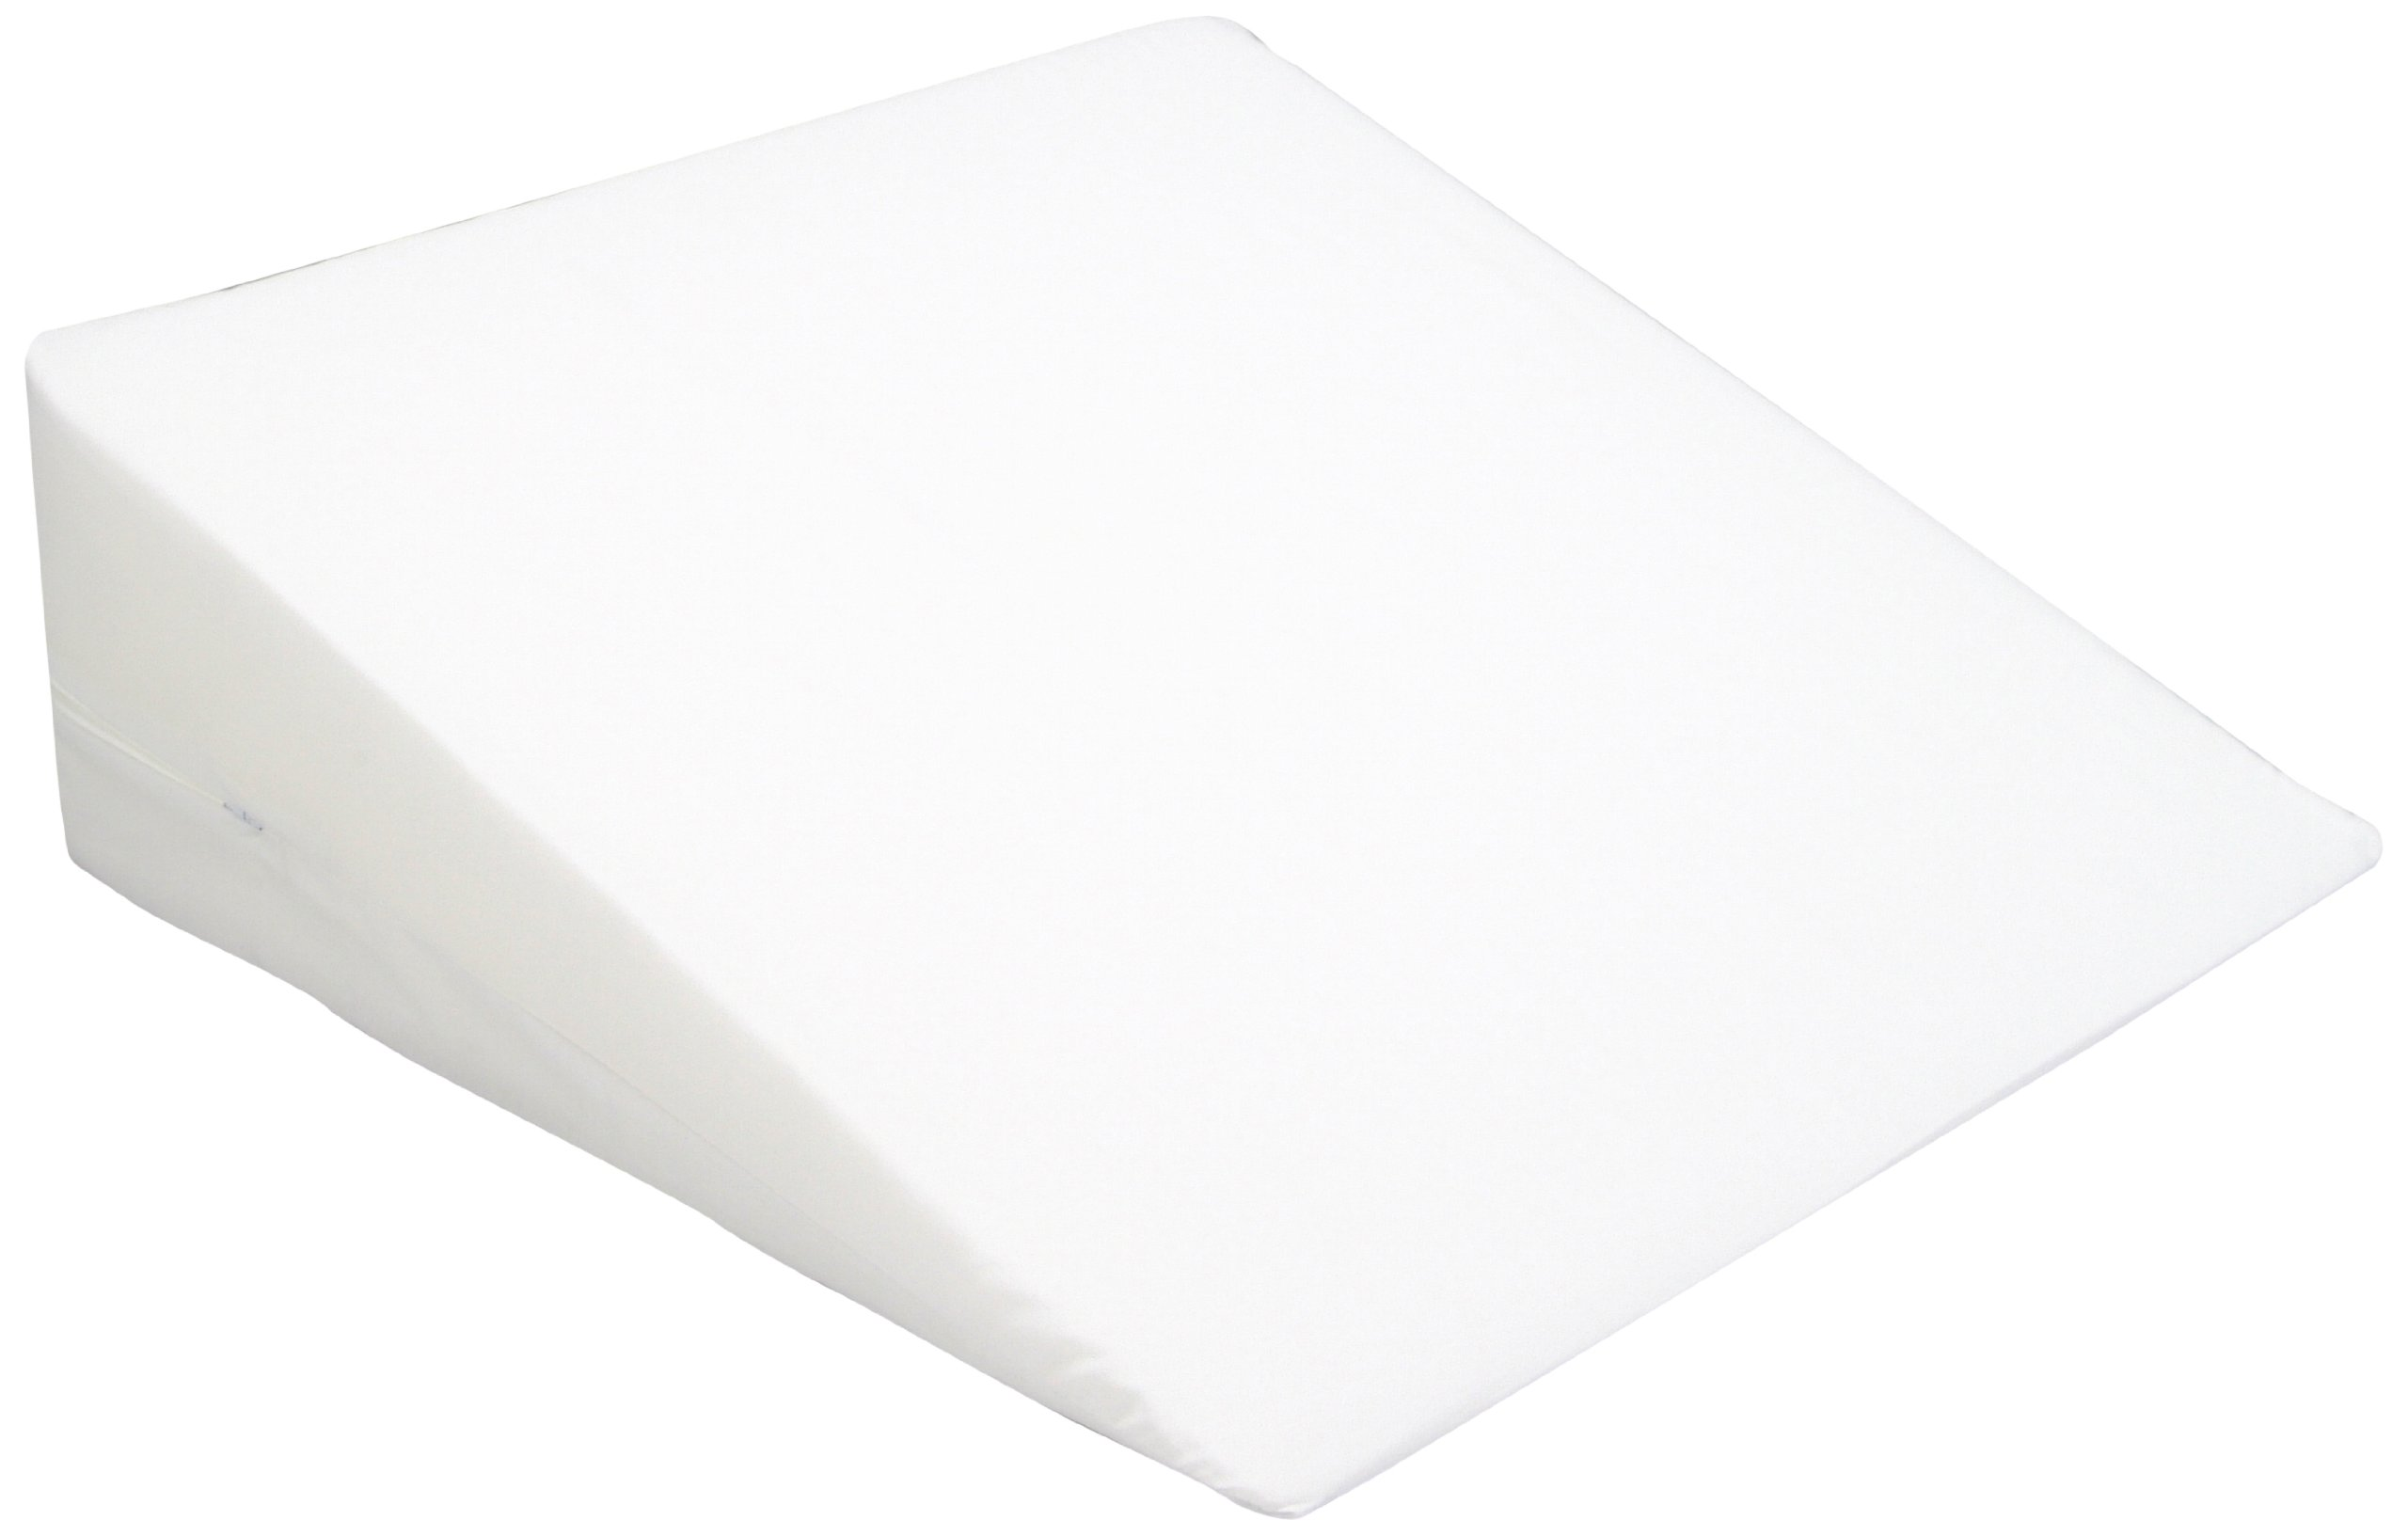 Hermell Products 10-Inch Bed Wedge with White Cover